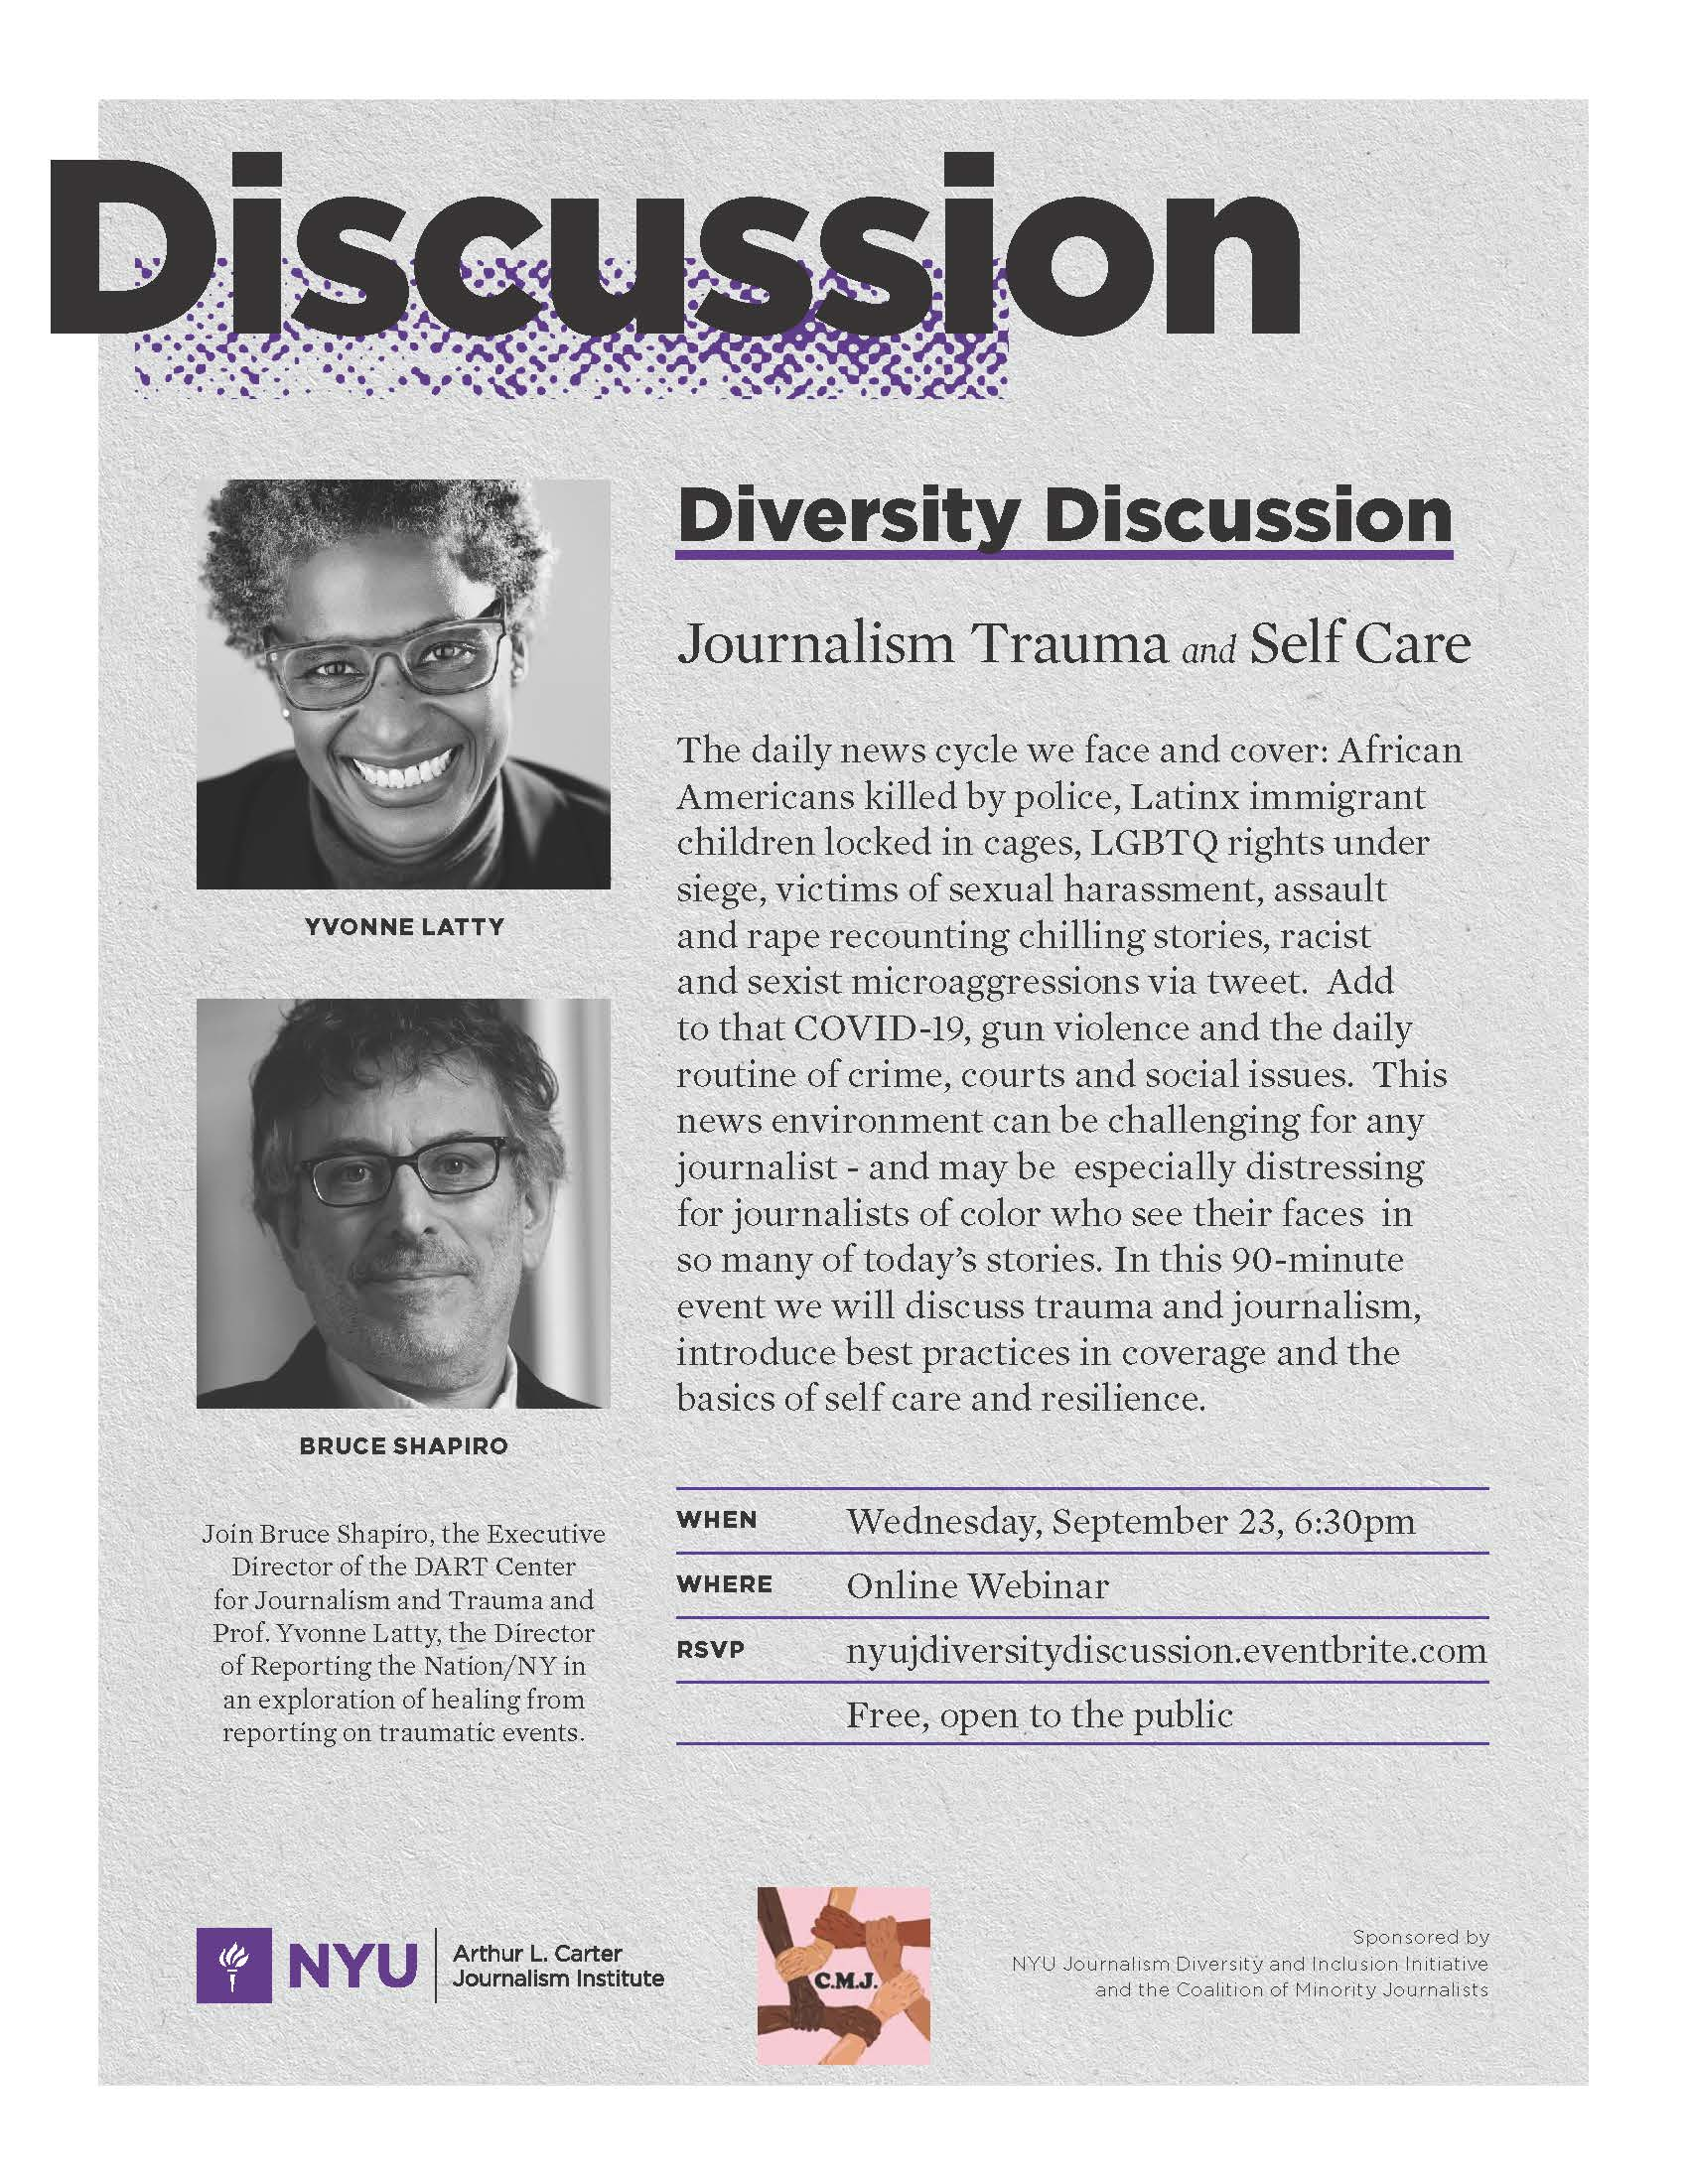 Diversity Discussion: Journalism Trauma and Self Care - Sep 23, 2020 - Event Poster (See event page for details)